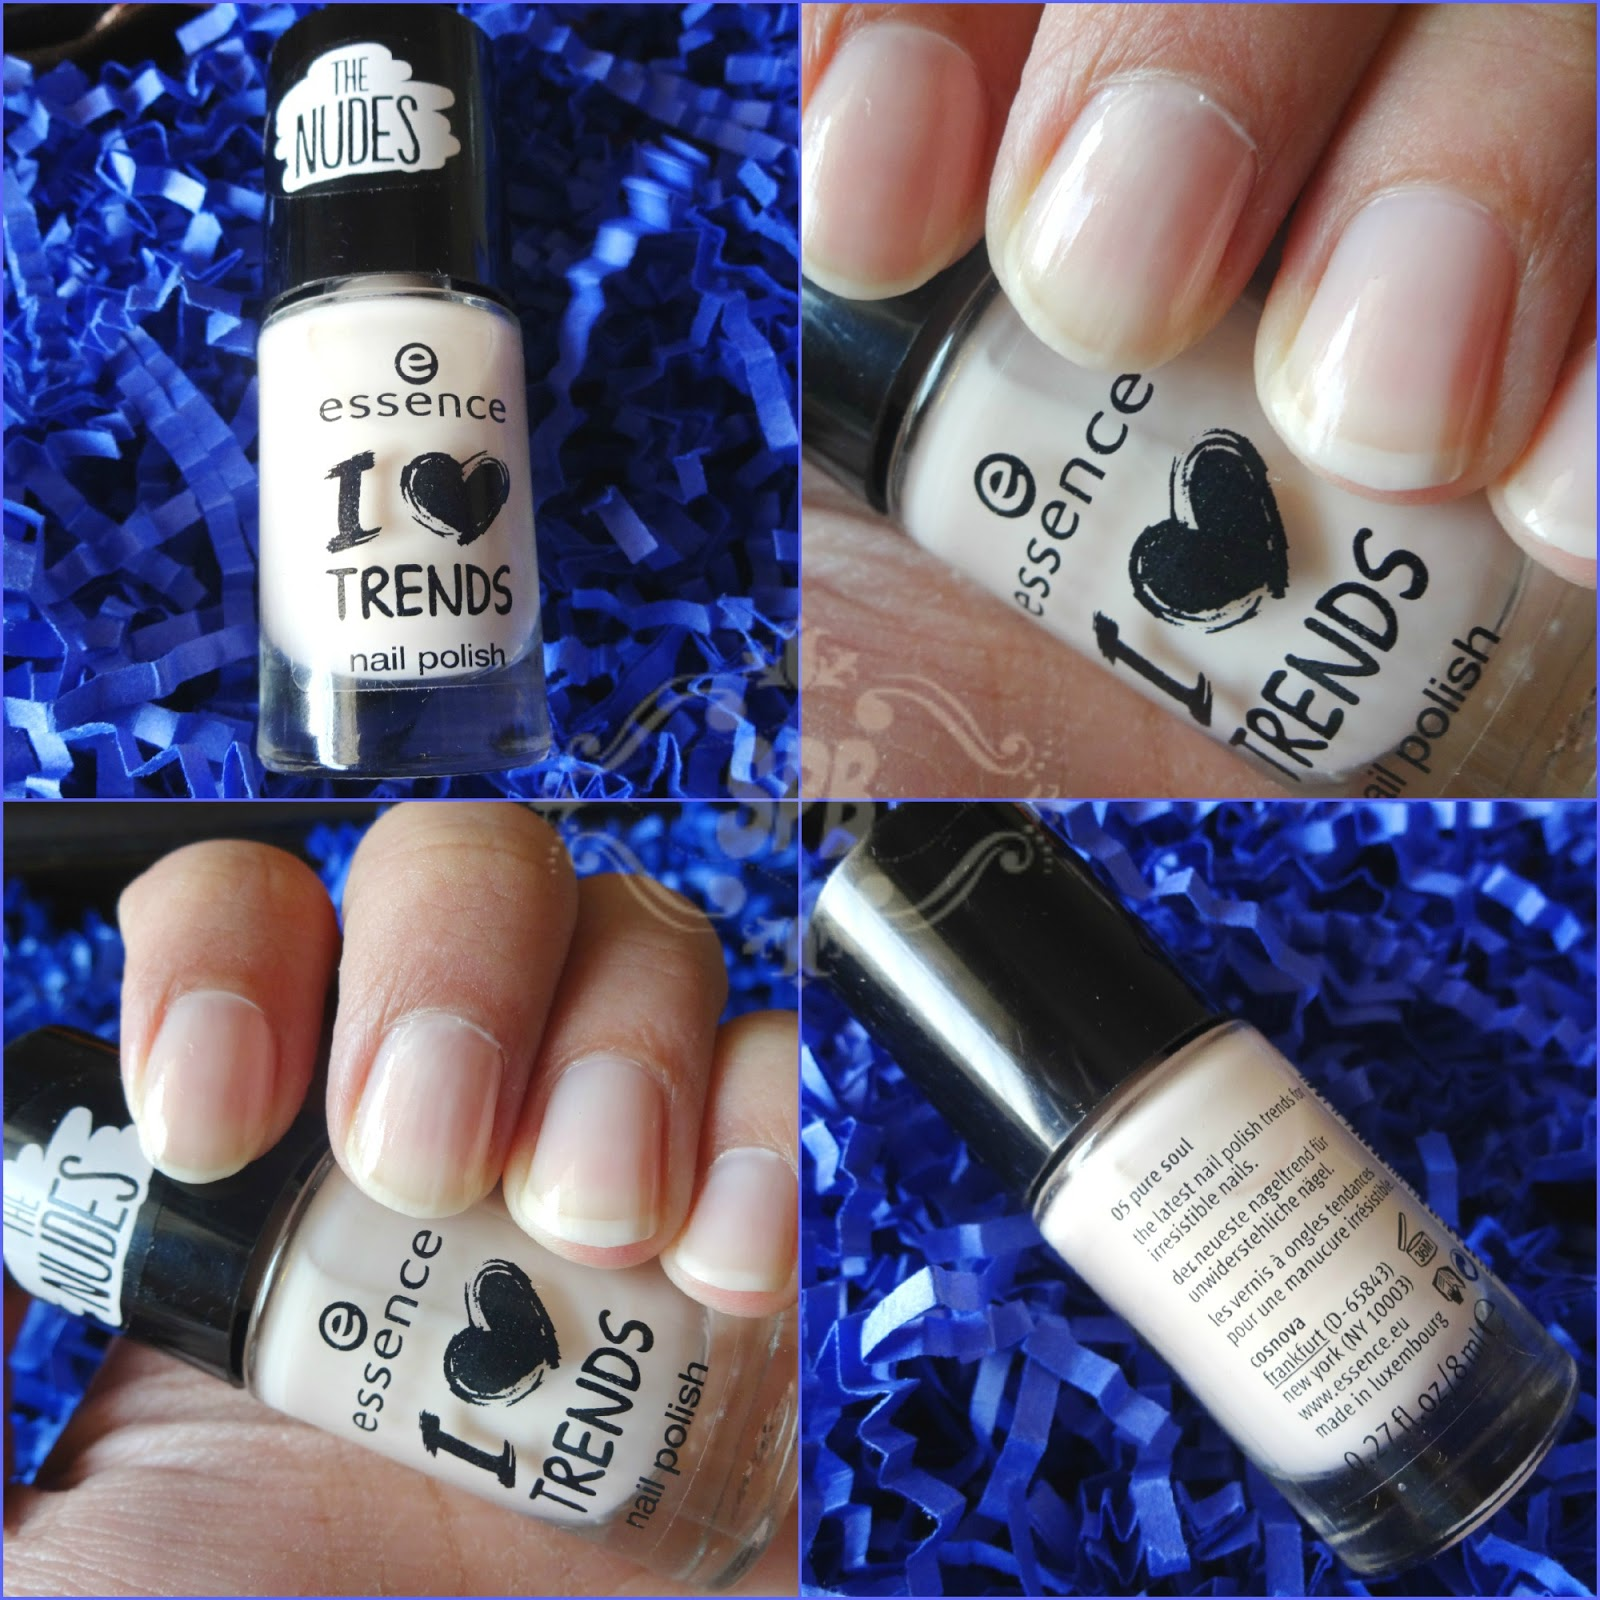 Essence I Love Trends Nail Polish 21 - Creative Touch